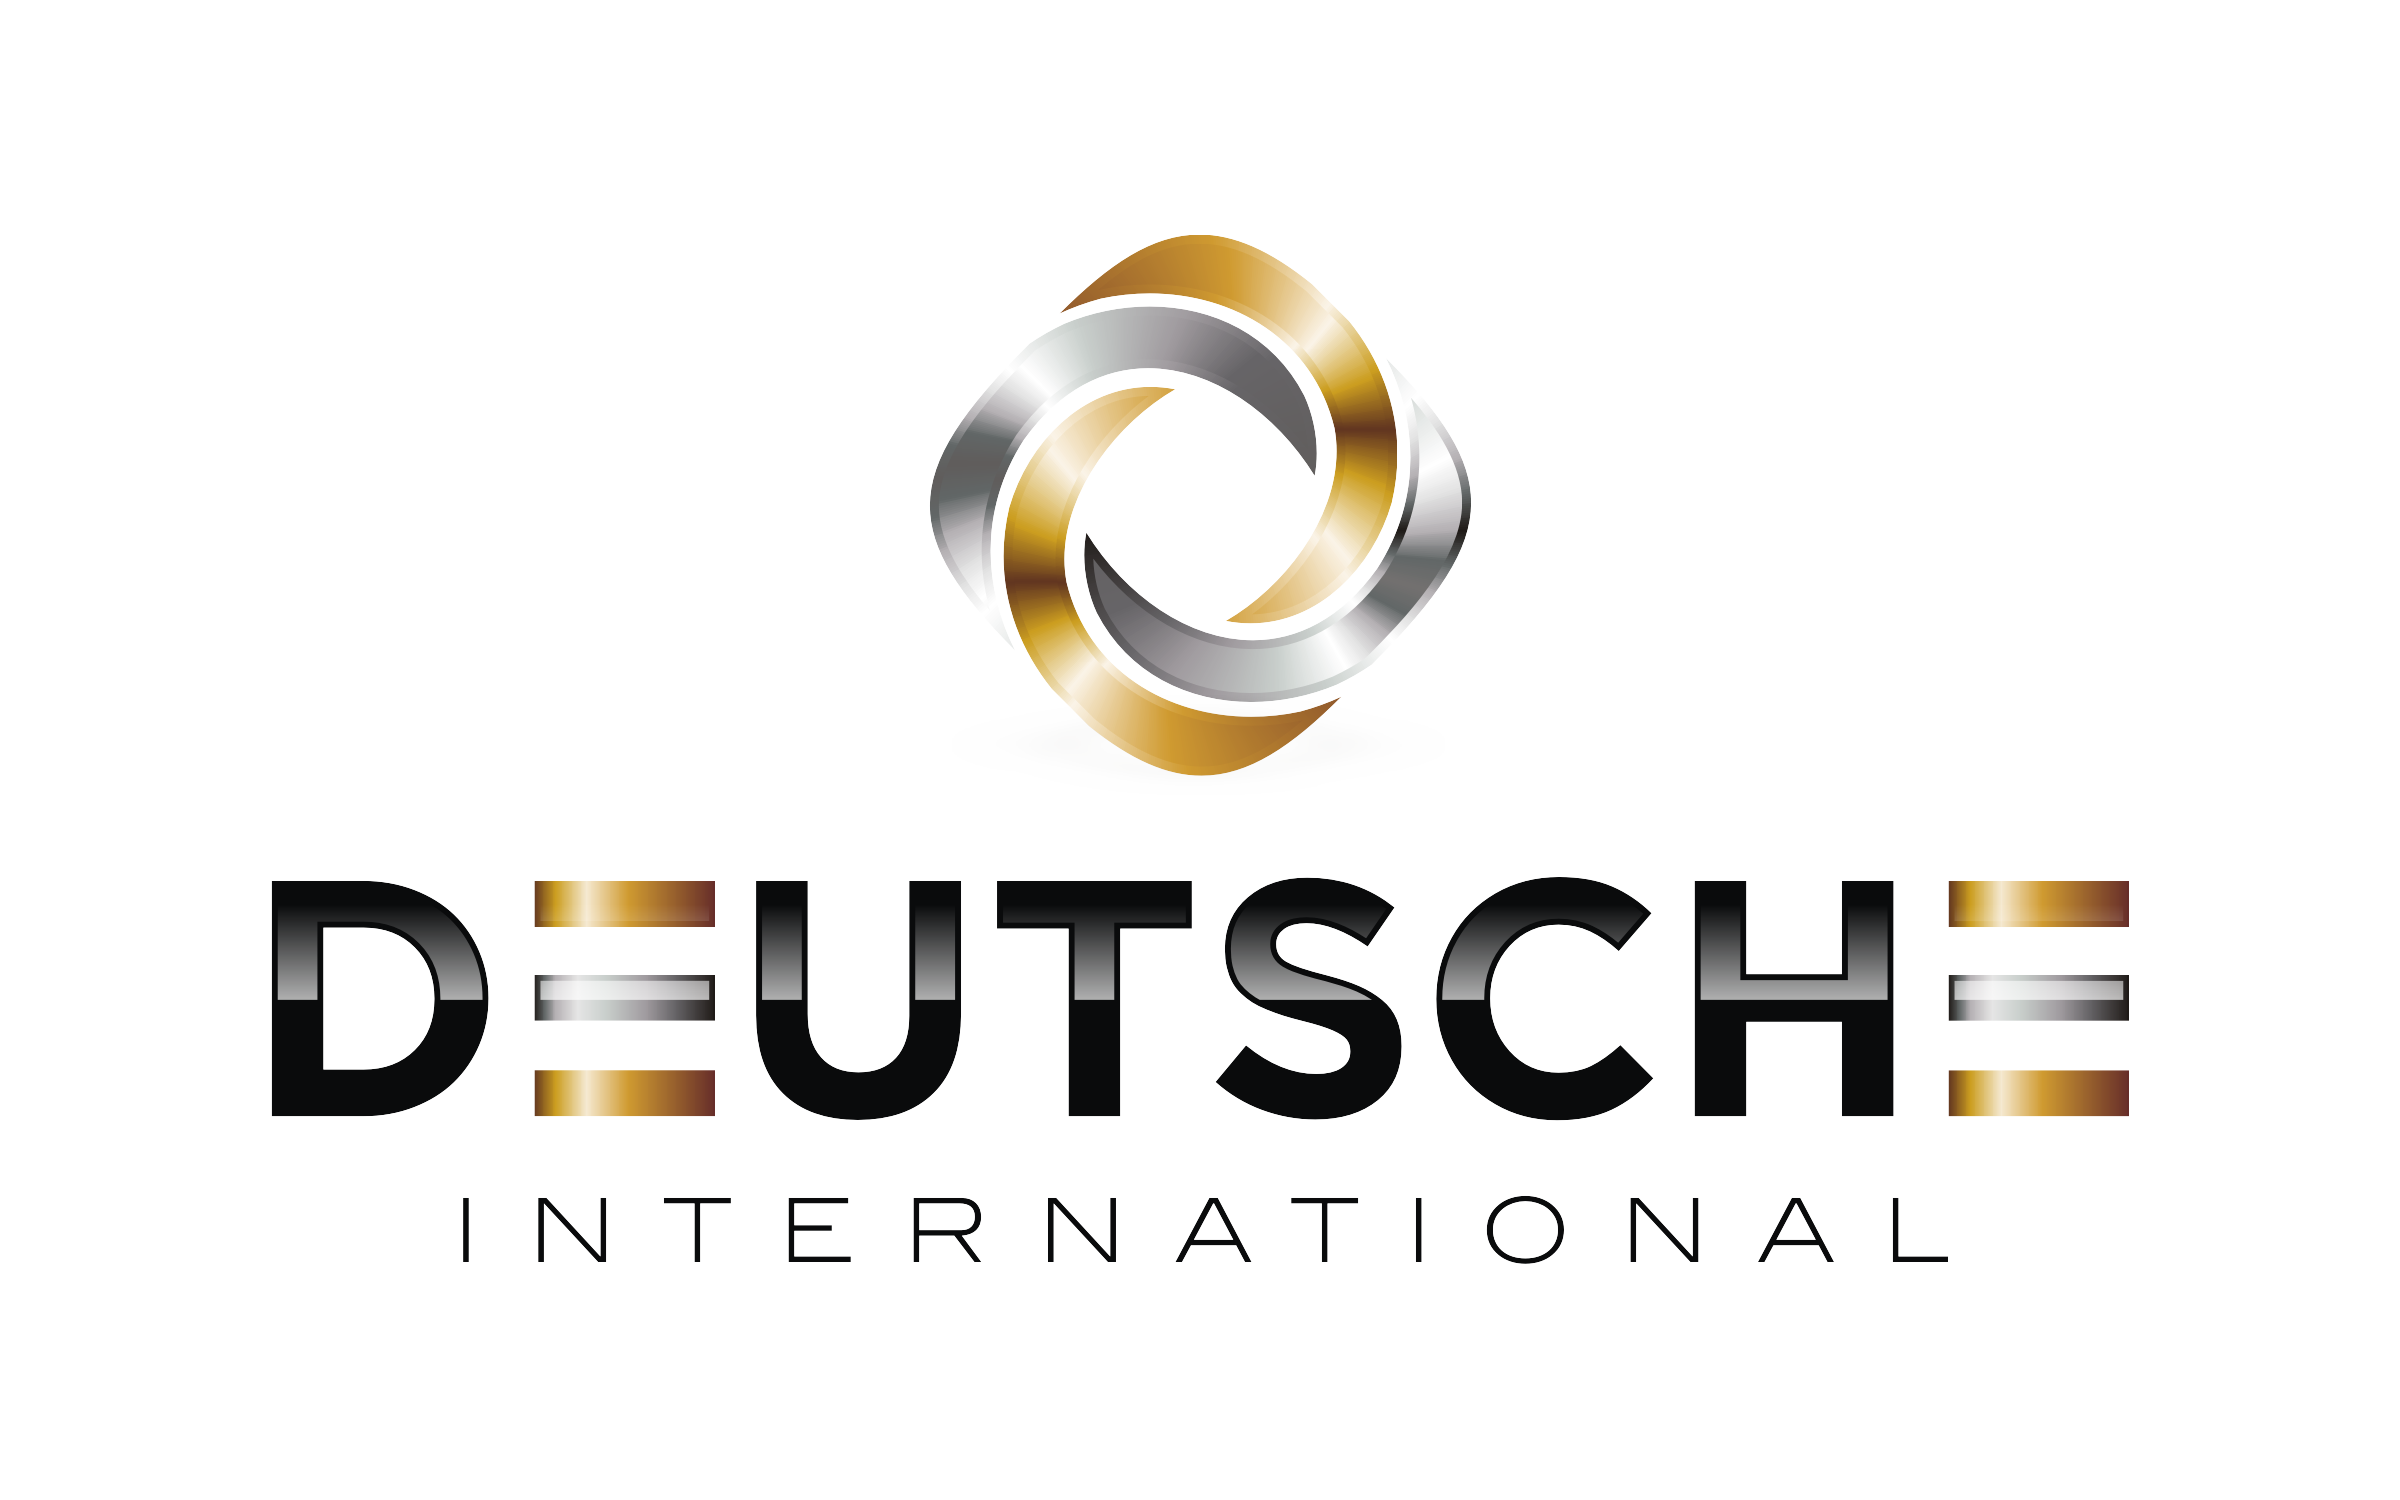 D.I.Deutsche International GmbH